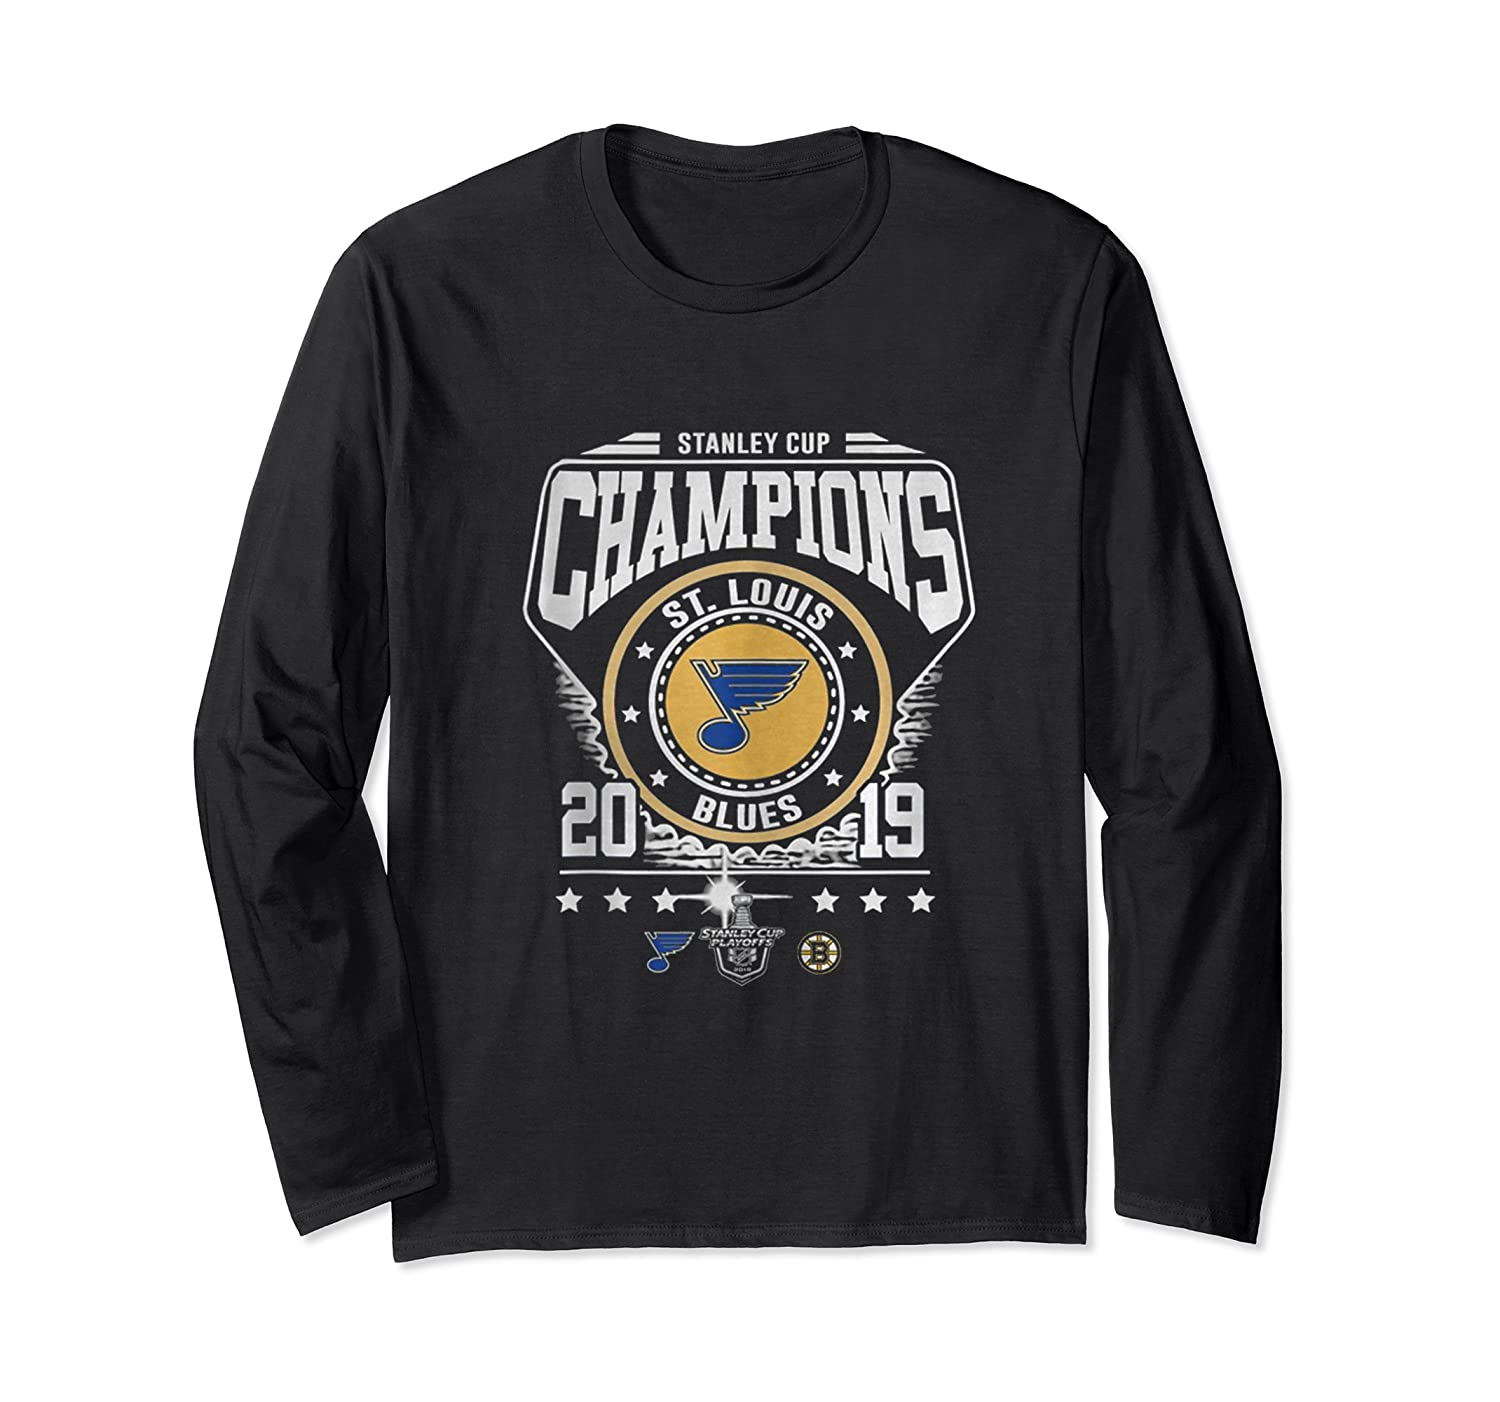 Best Gift Stanley St-louis Cup Blues Champions 2019 Tank Top Shirts Long Sleeve T-shirt